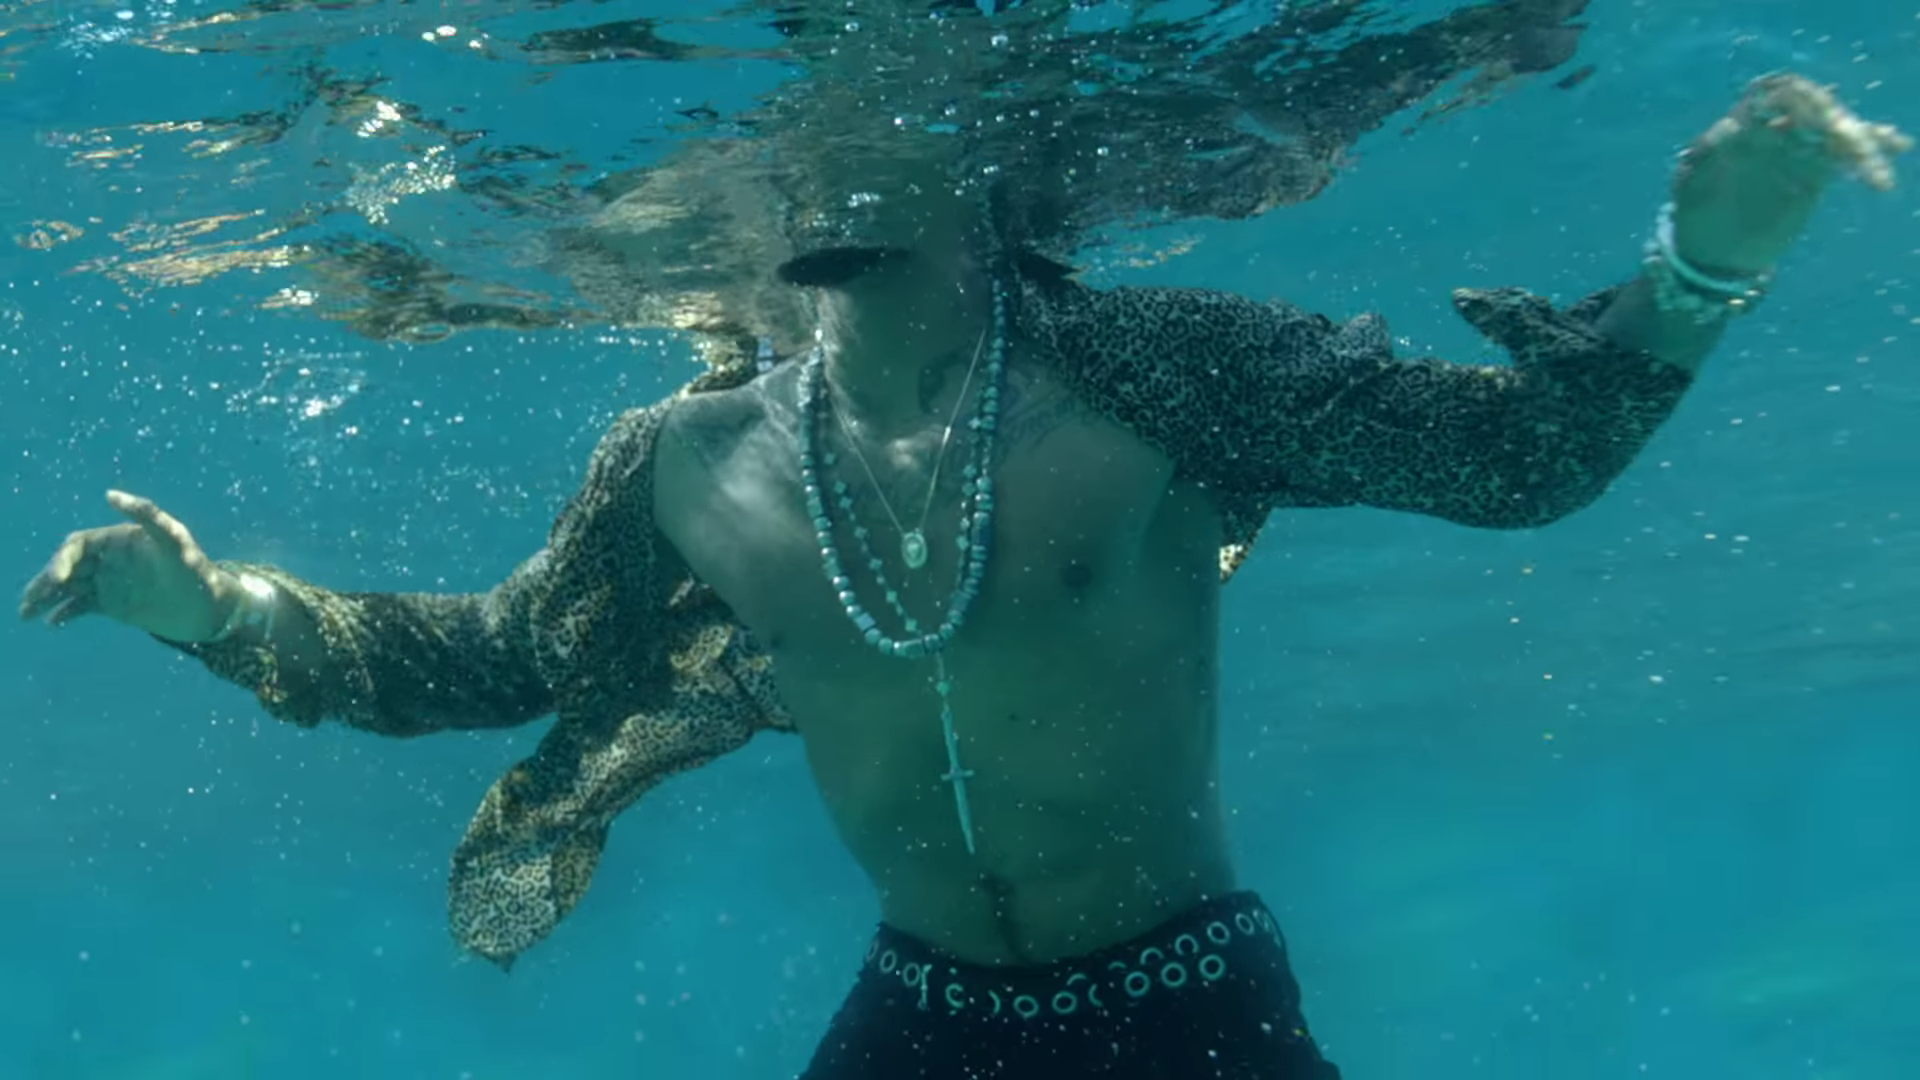 Miguel underwater and going up to the surface for air in the Waves video.jpg